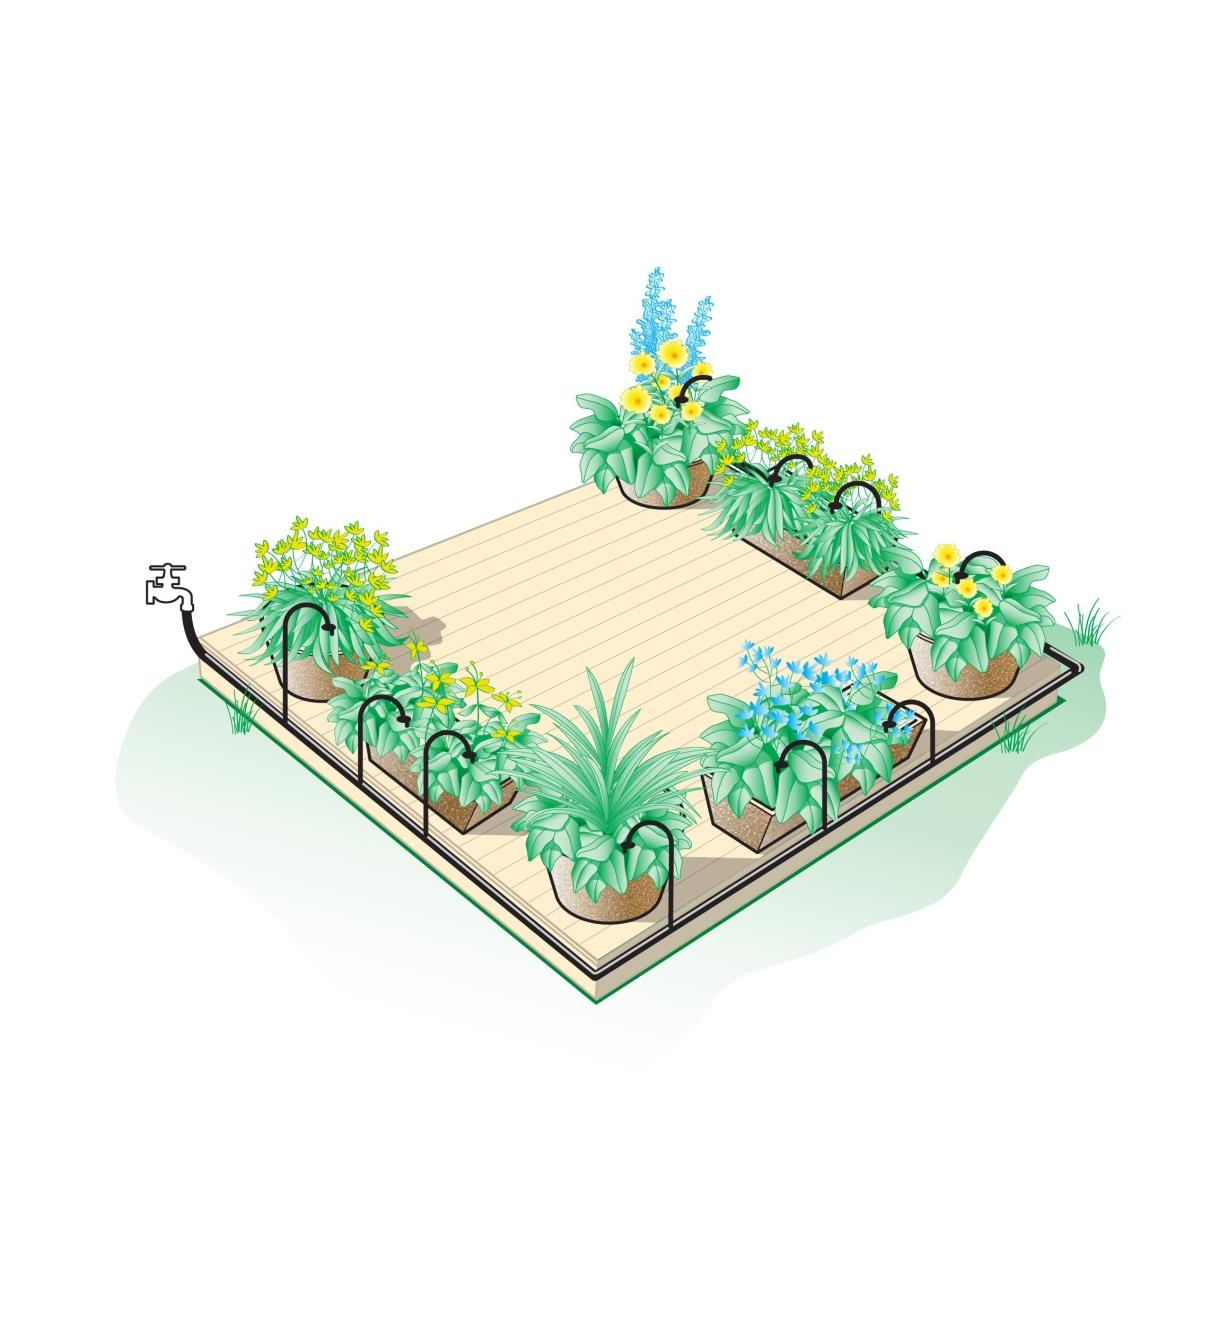 Illustrated example of deck watering kit set up on 15' × 15' deck